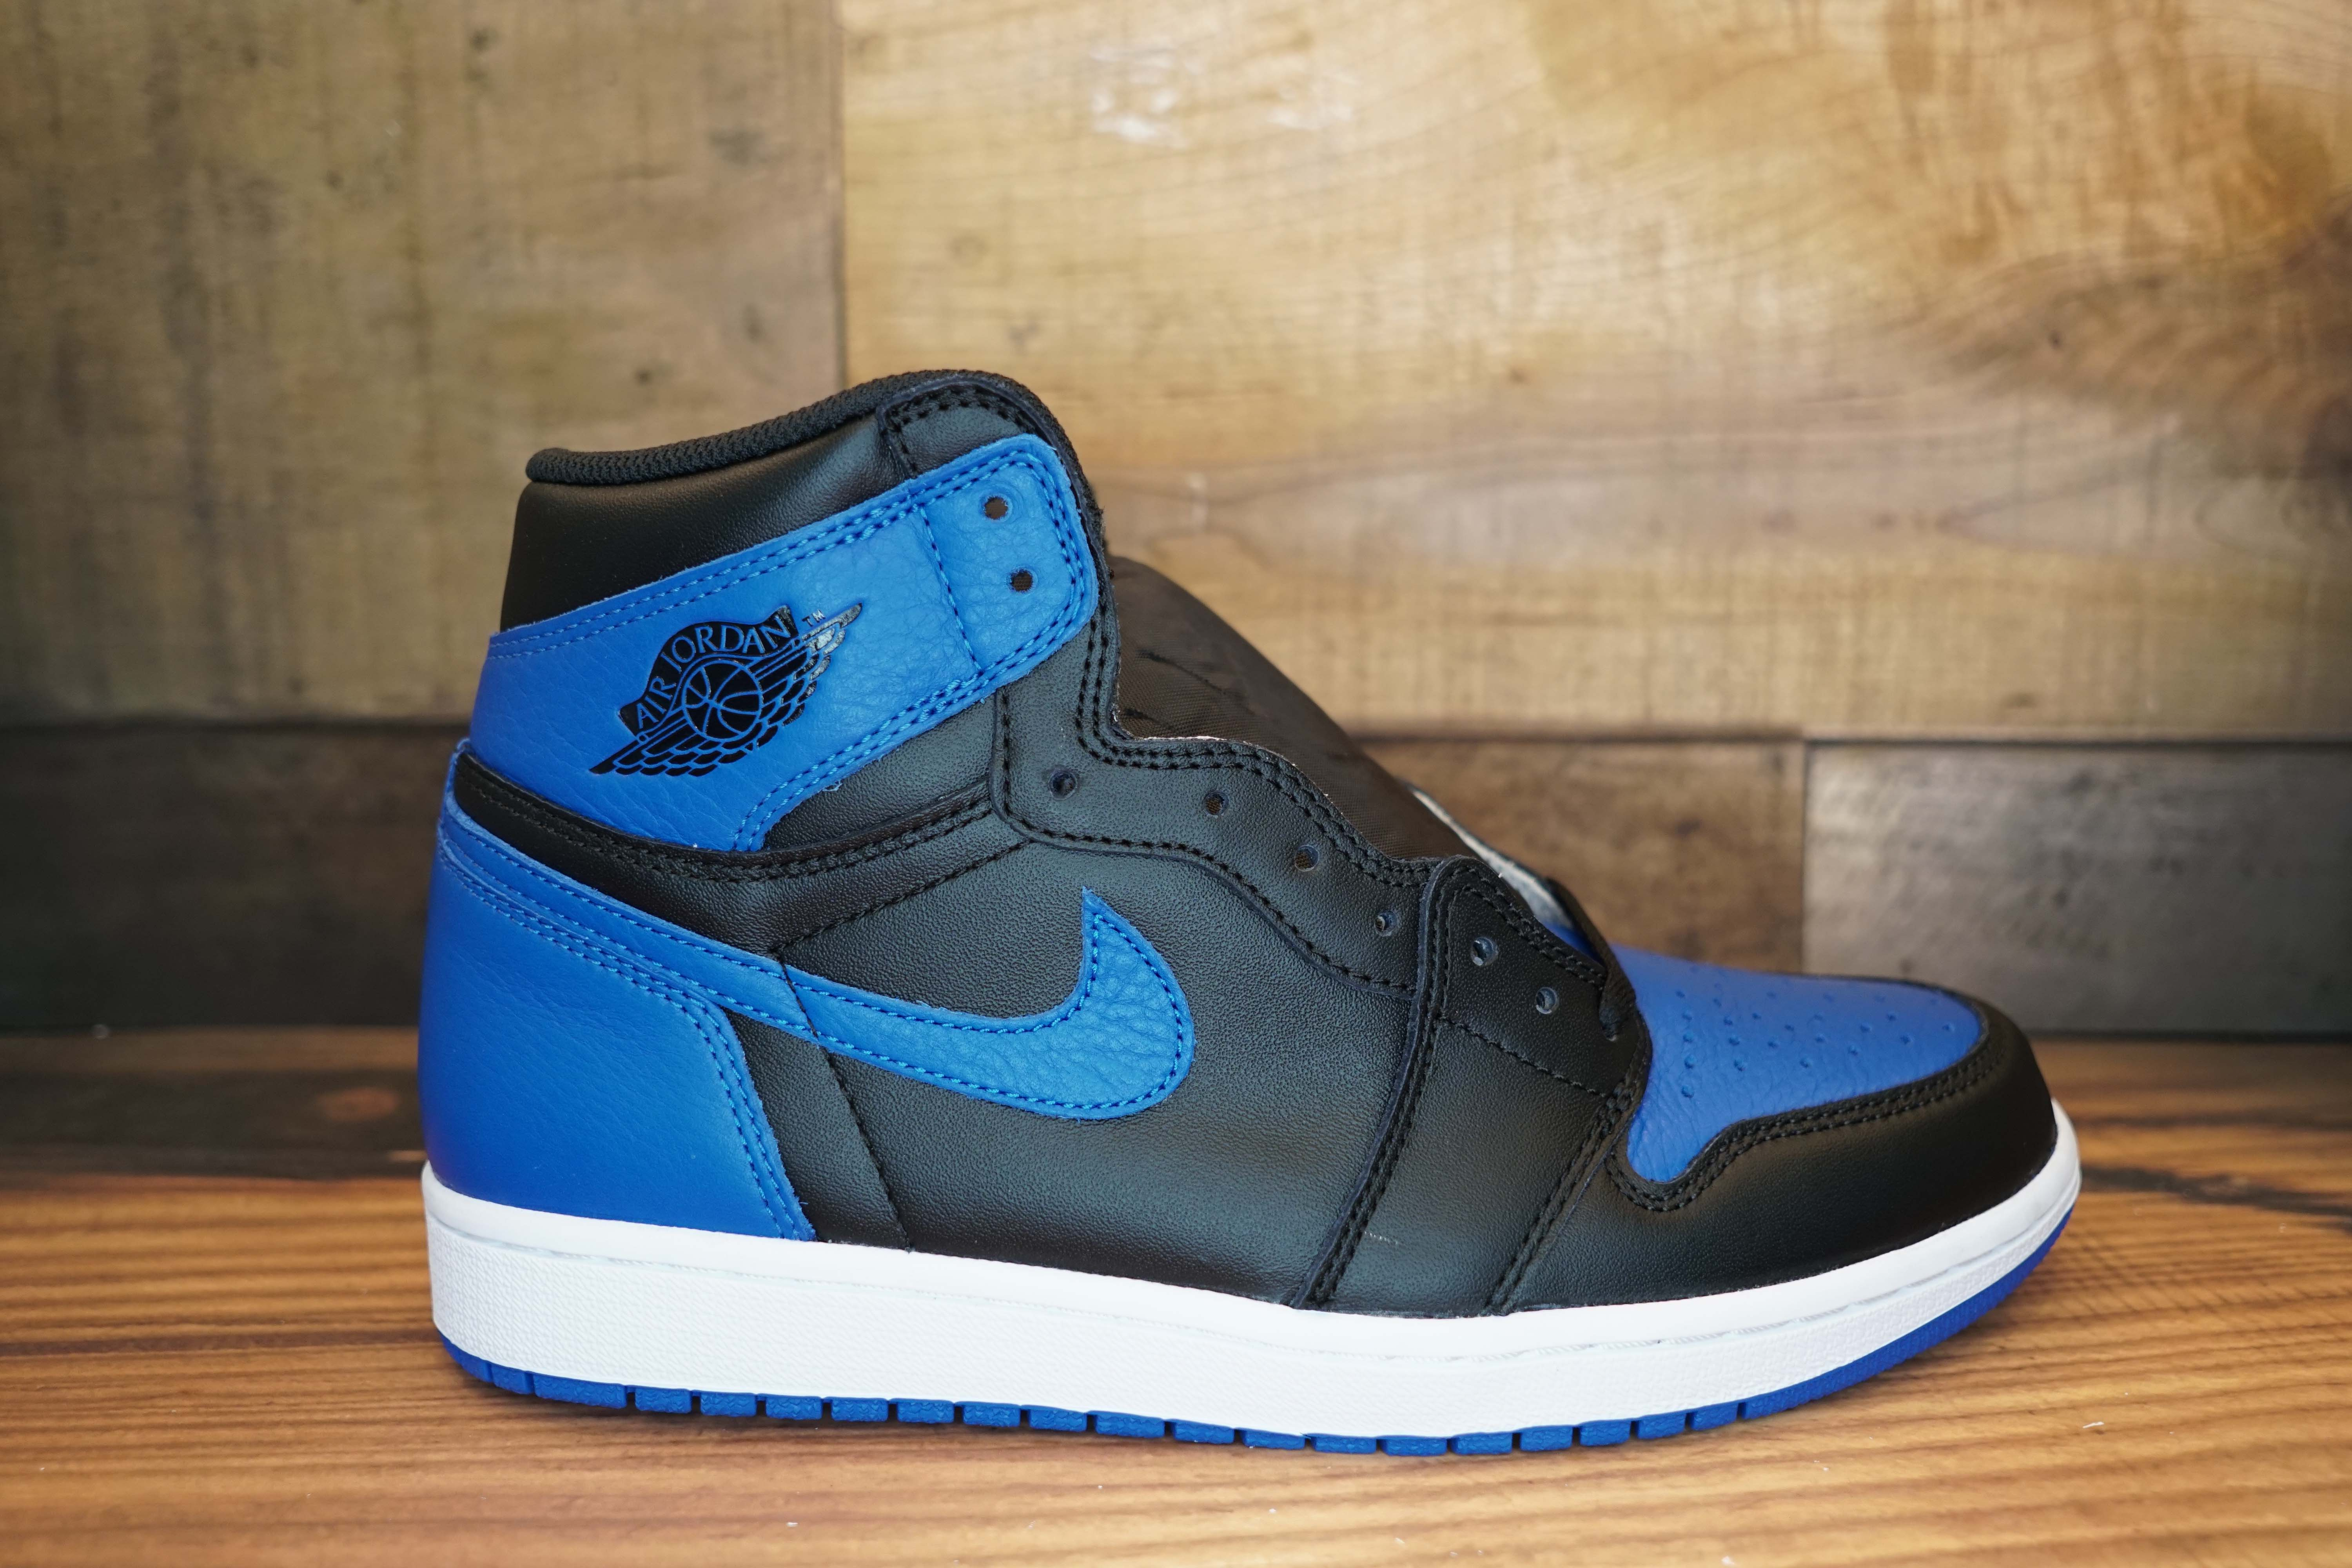 4a046c8fc03 air jordan 1 size 3 Buy Jordan Nike Men s AJ1 KO High OG Basketball Shoes  11.5 Blue ...